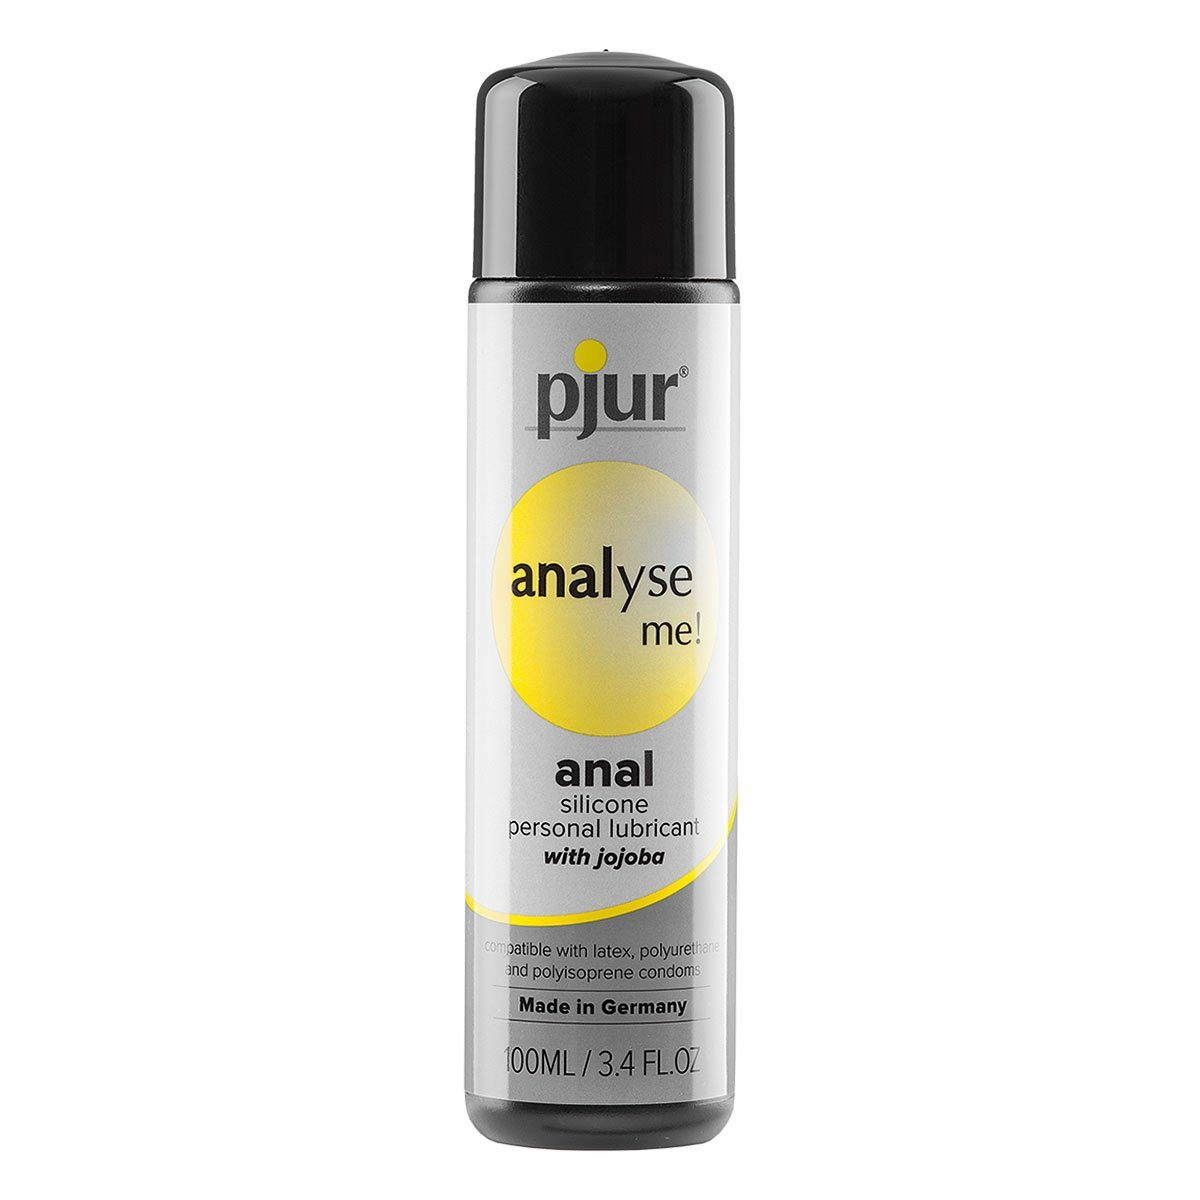 Pjur Analyse Me Personal Lubricant Silicone Based Lube Pjur Default Title